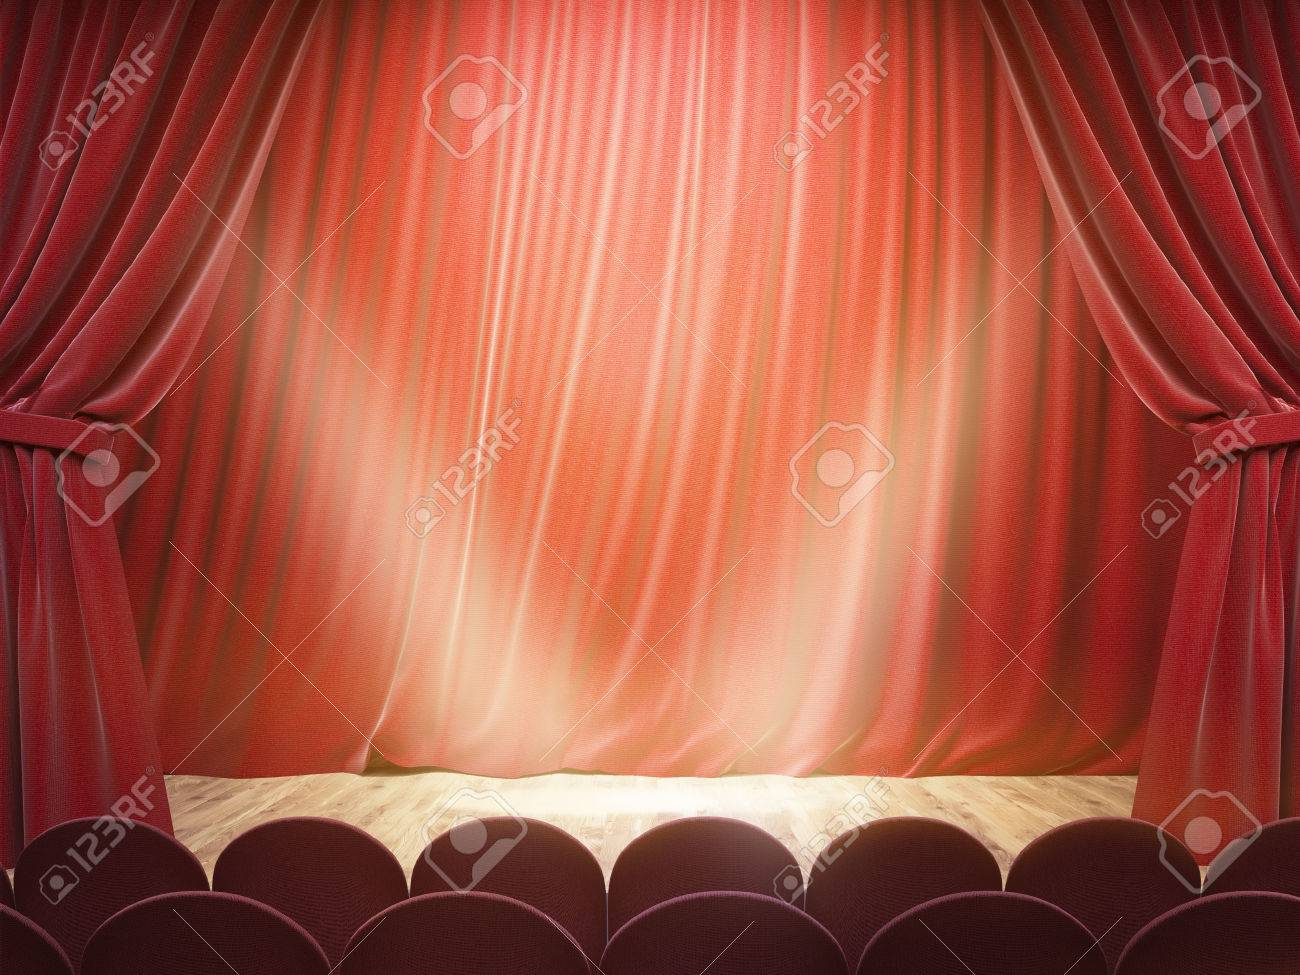 Stock Photo   Theater Stage With Drawn Red Curtains And Limelight. Mock Up,  3D Rendering